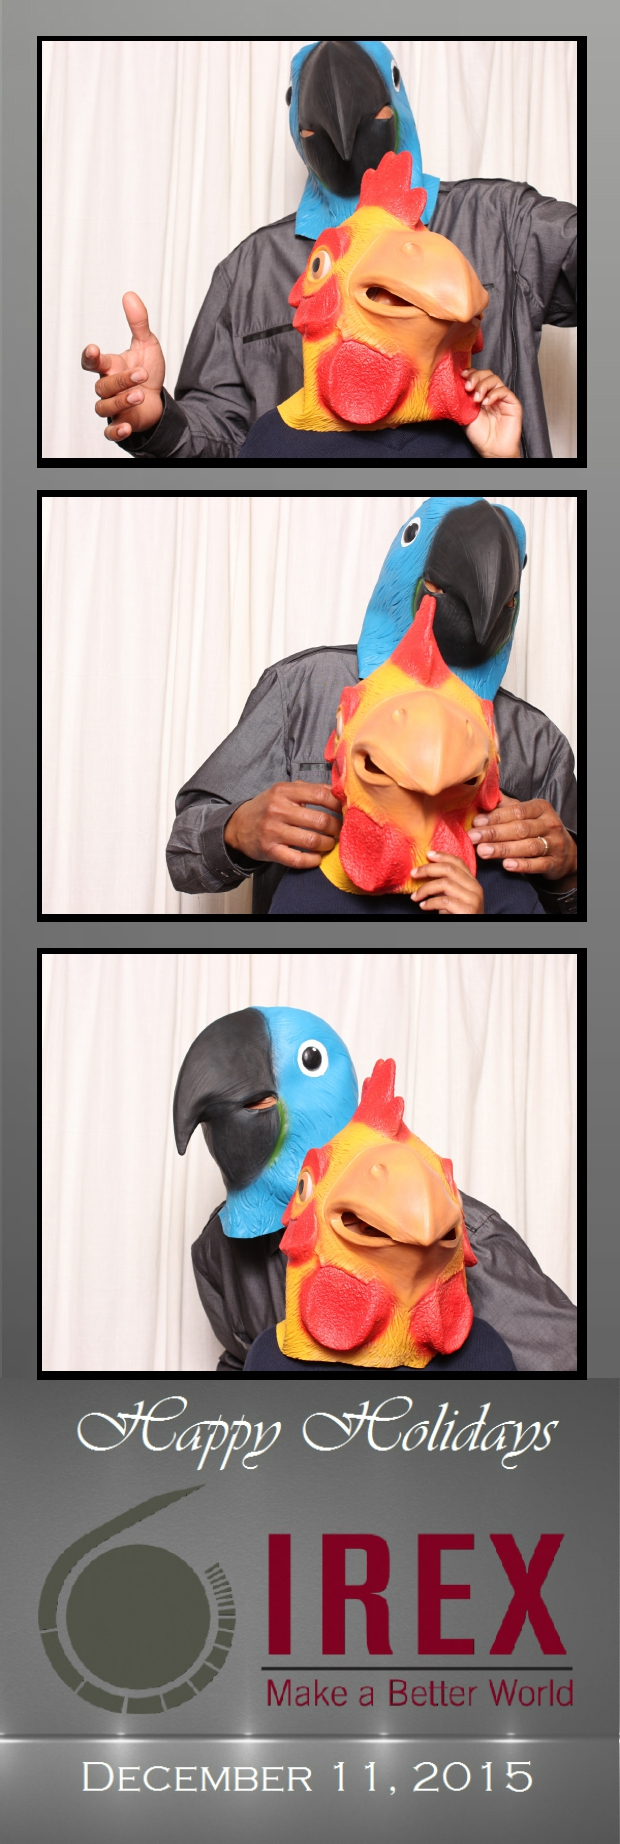 Guest House Events Photo Booth Strips IREX (93).jpg